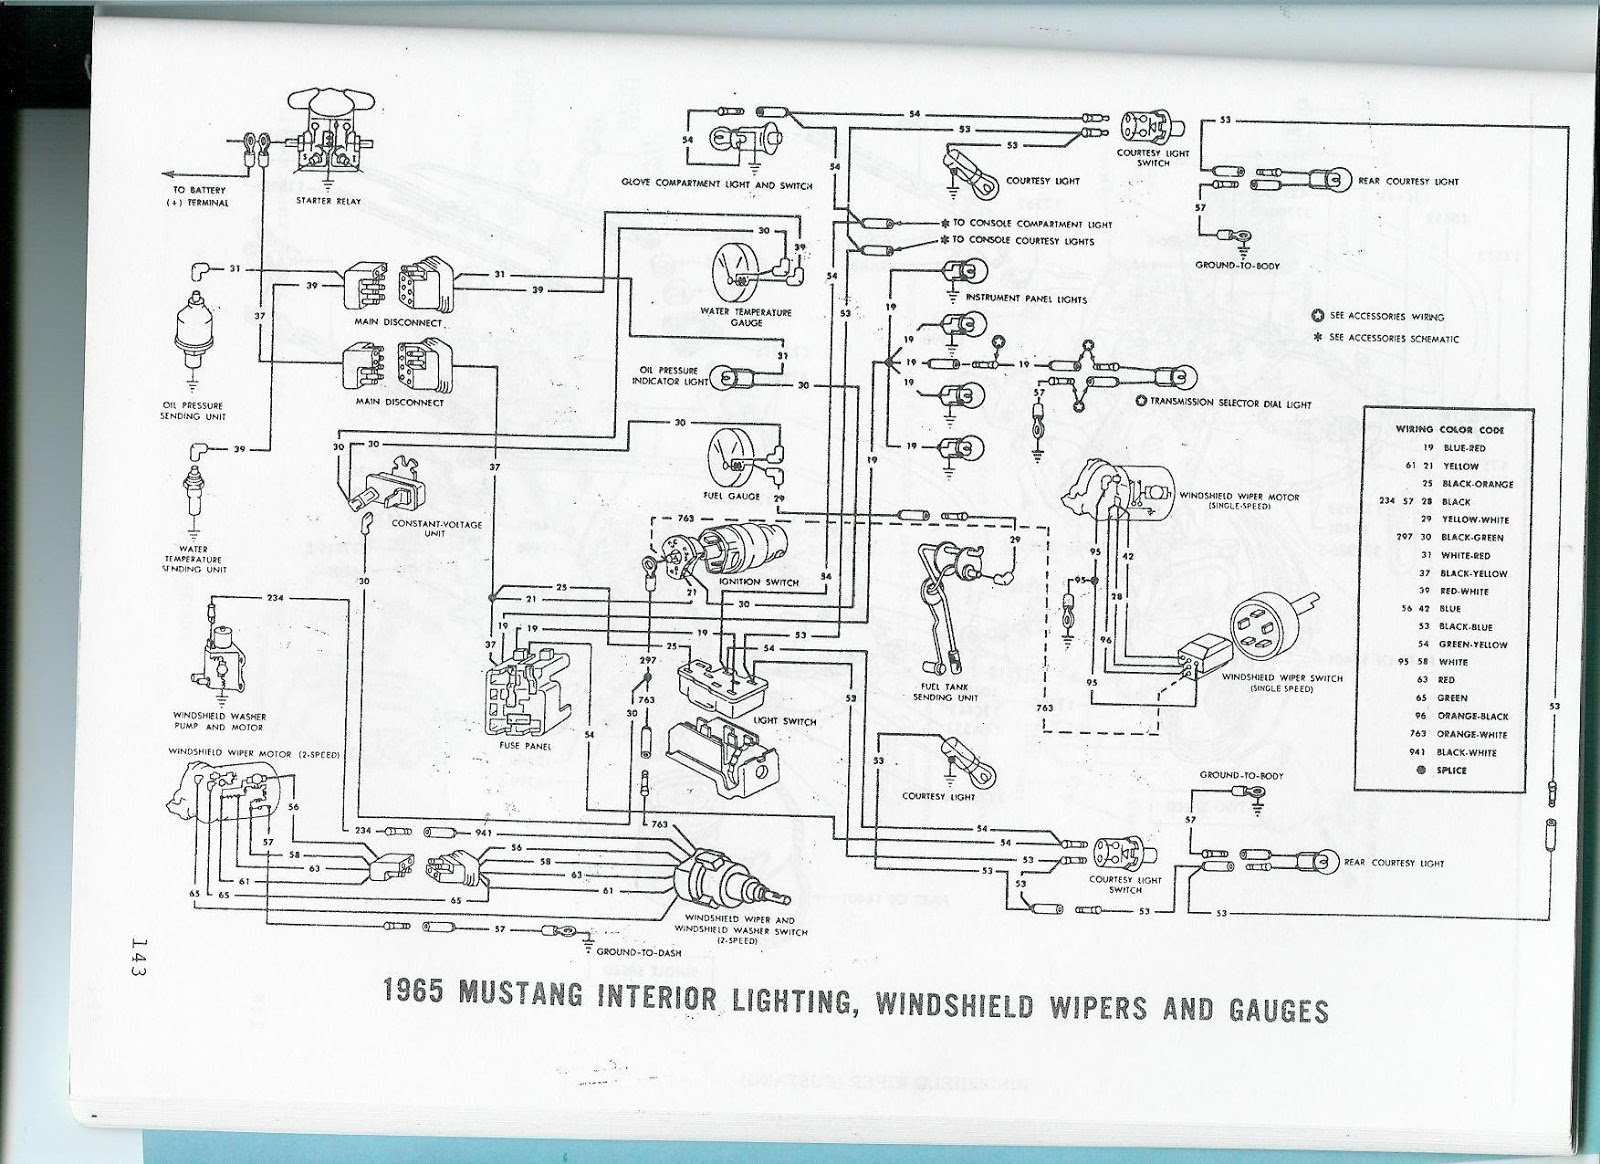 1972 Chevelle Ac Wiring Diagram Archive Of Automotive Bulkhead Schematic 1970 Chevrolet C10 1965 Fuse Box Opinions About U2022 Rh Voterid Co